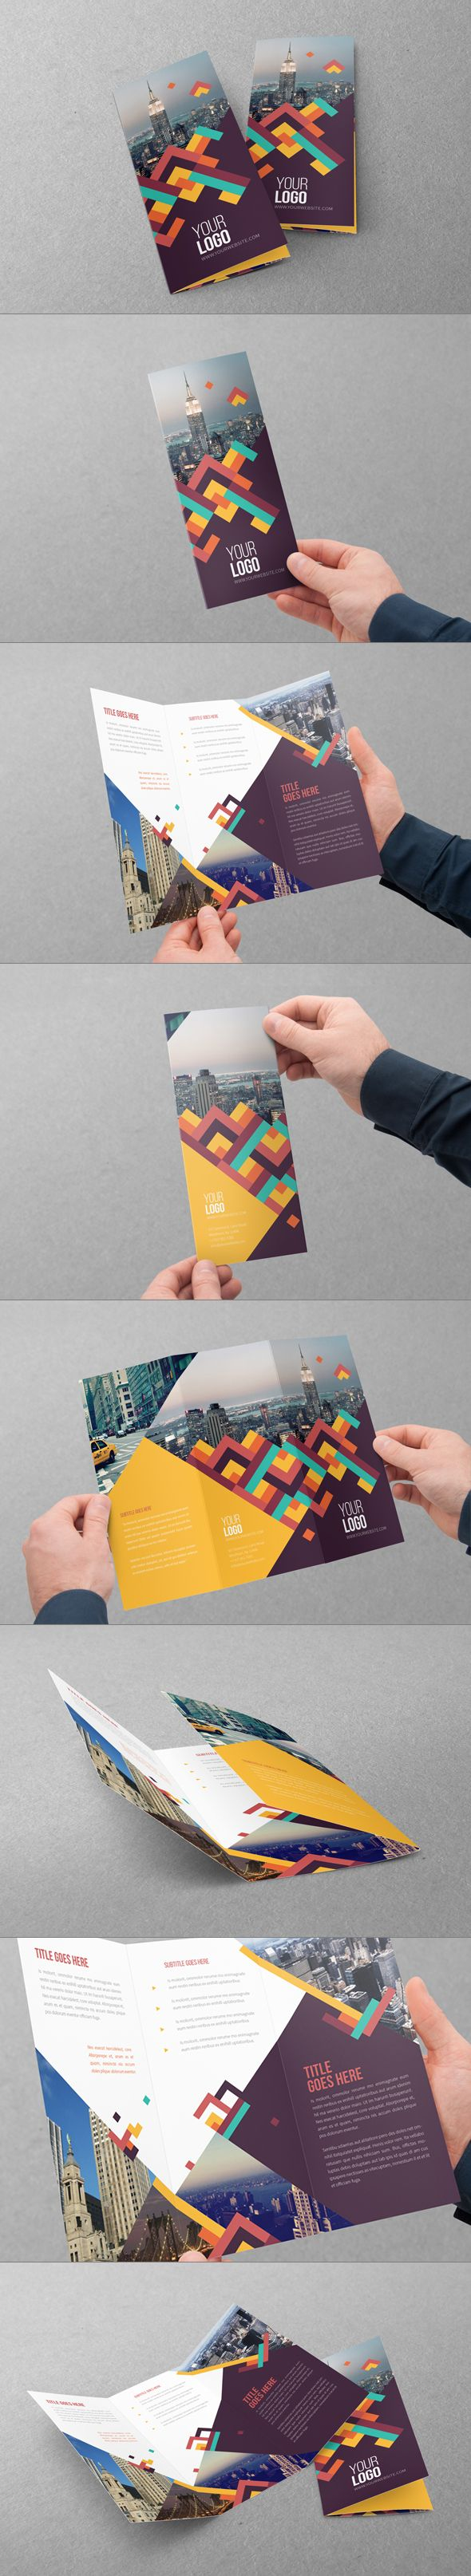 Colorful Pattern Trifold. Download here: http://graphicriver.net/item/colorful-pattern-trifold/7909703?ref=abradesign #design #brochure